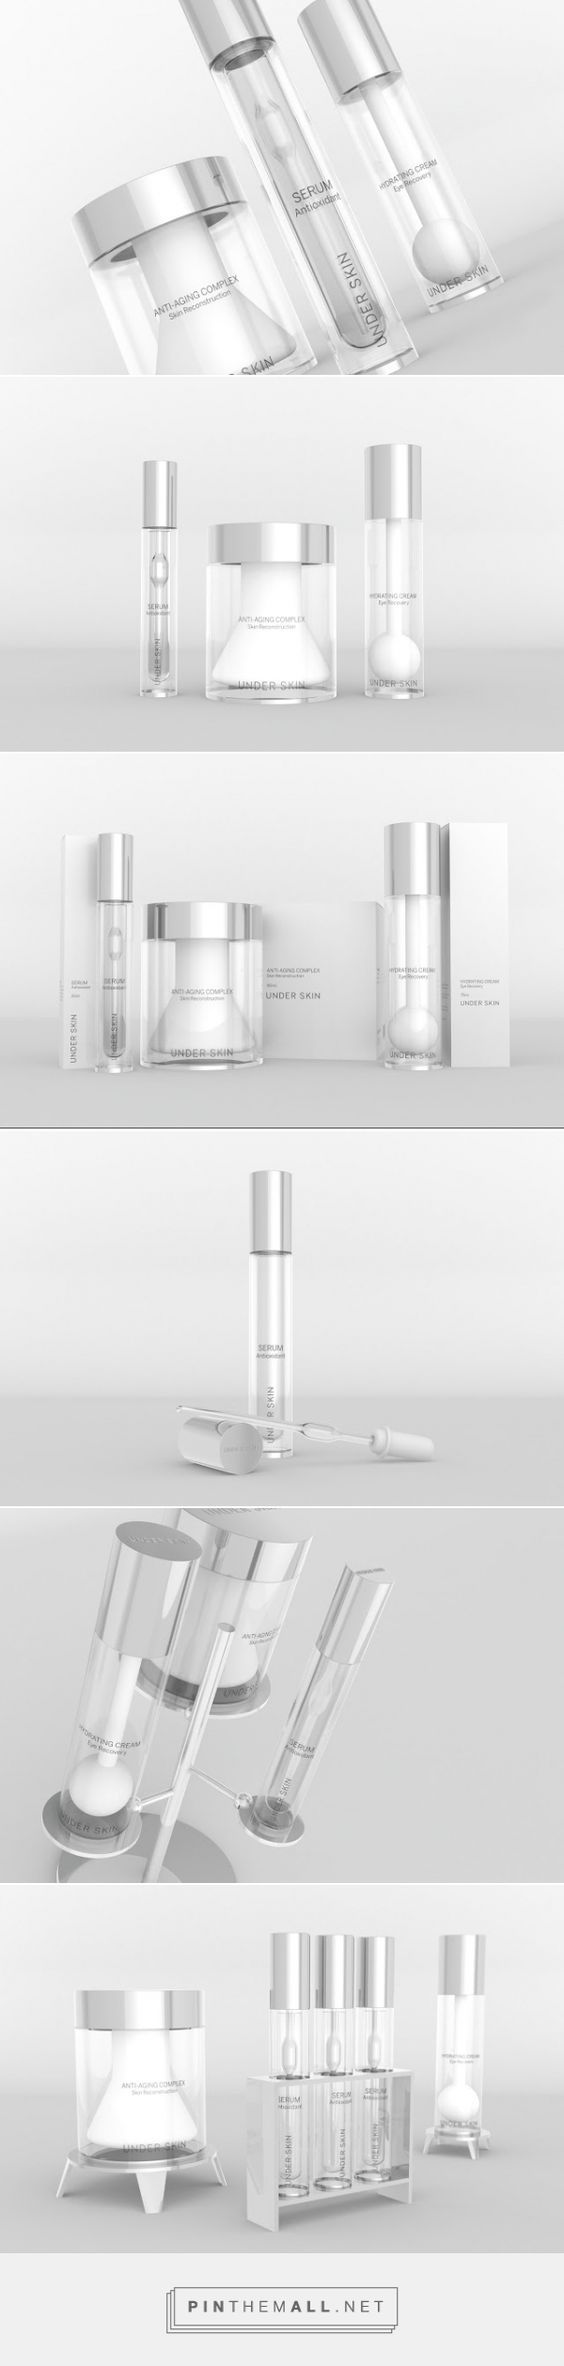 Under Skin #Beauty #Concept #packaging designed by Cristiano Gonçalo - http://www.packagingoftheworld.com/2015/06/under-skin-concept.html: